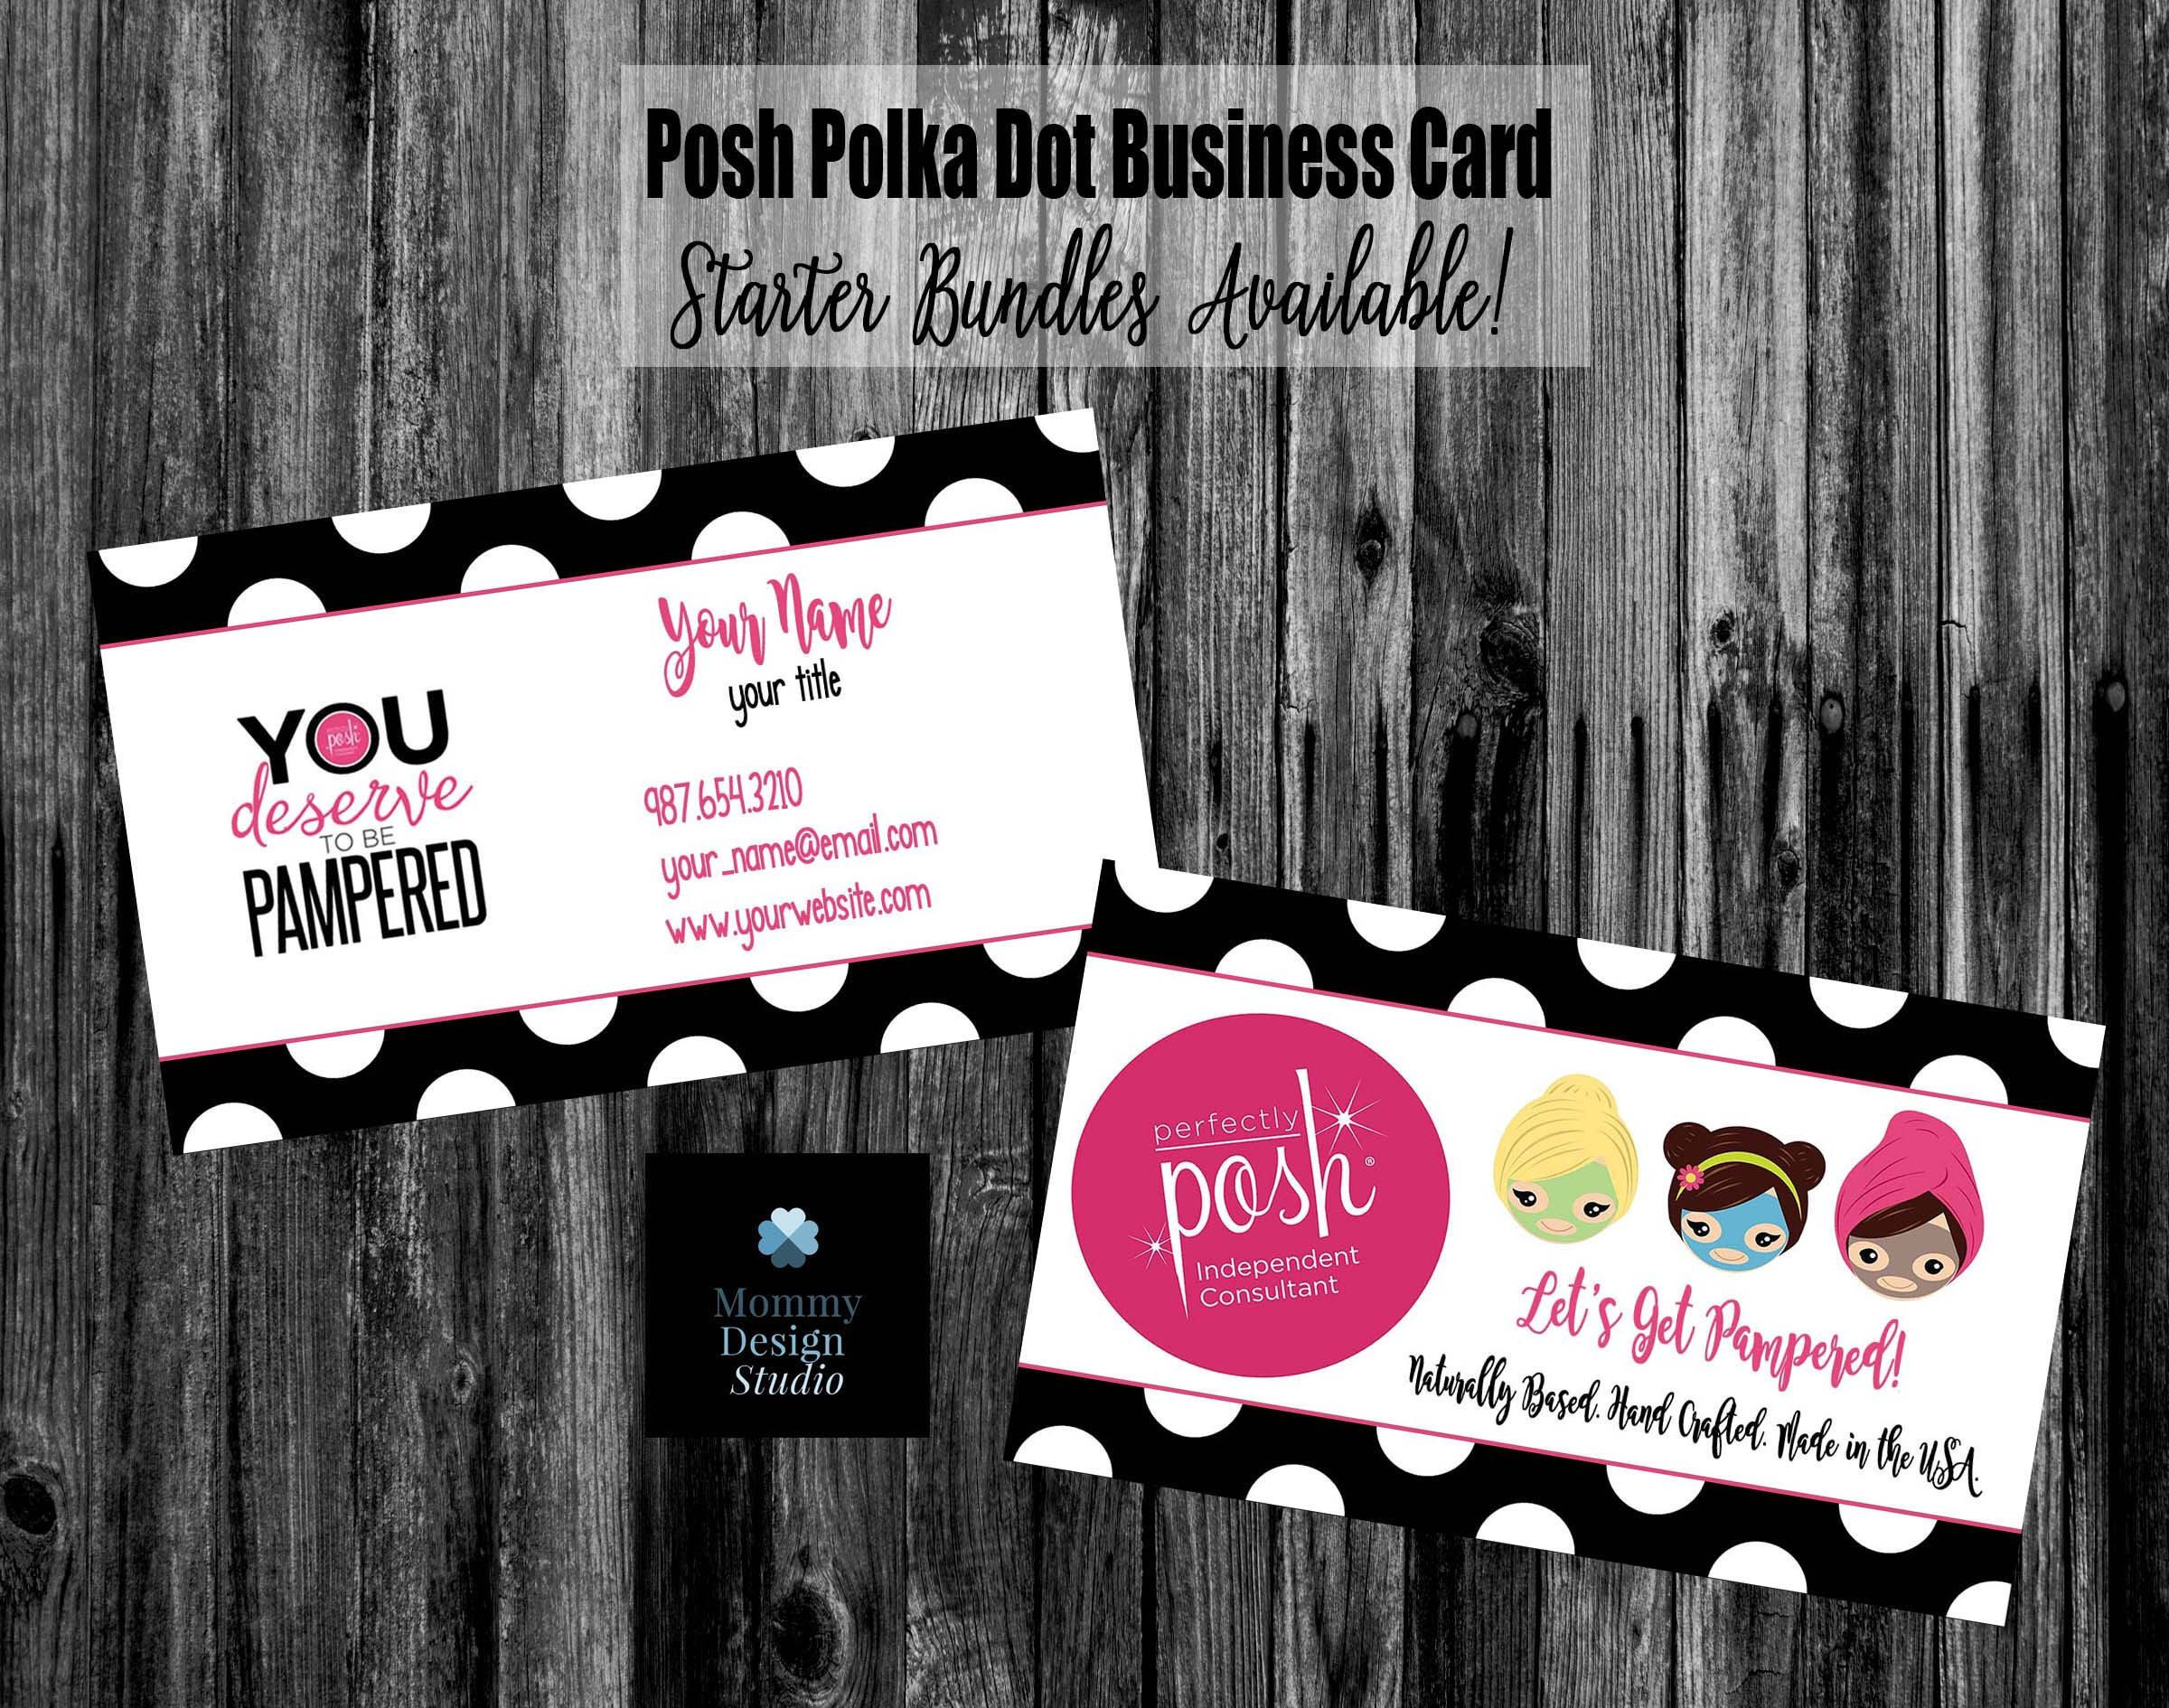 Perfectly Posh Polka Dot Business Card Home fice pliant